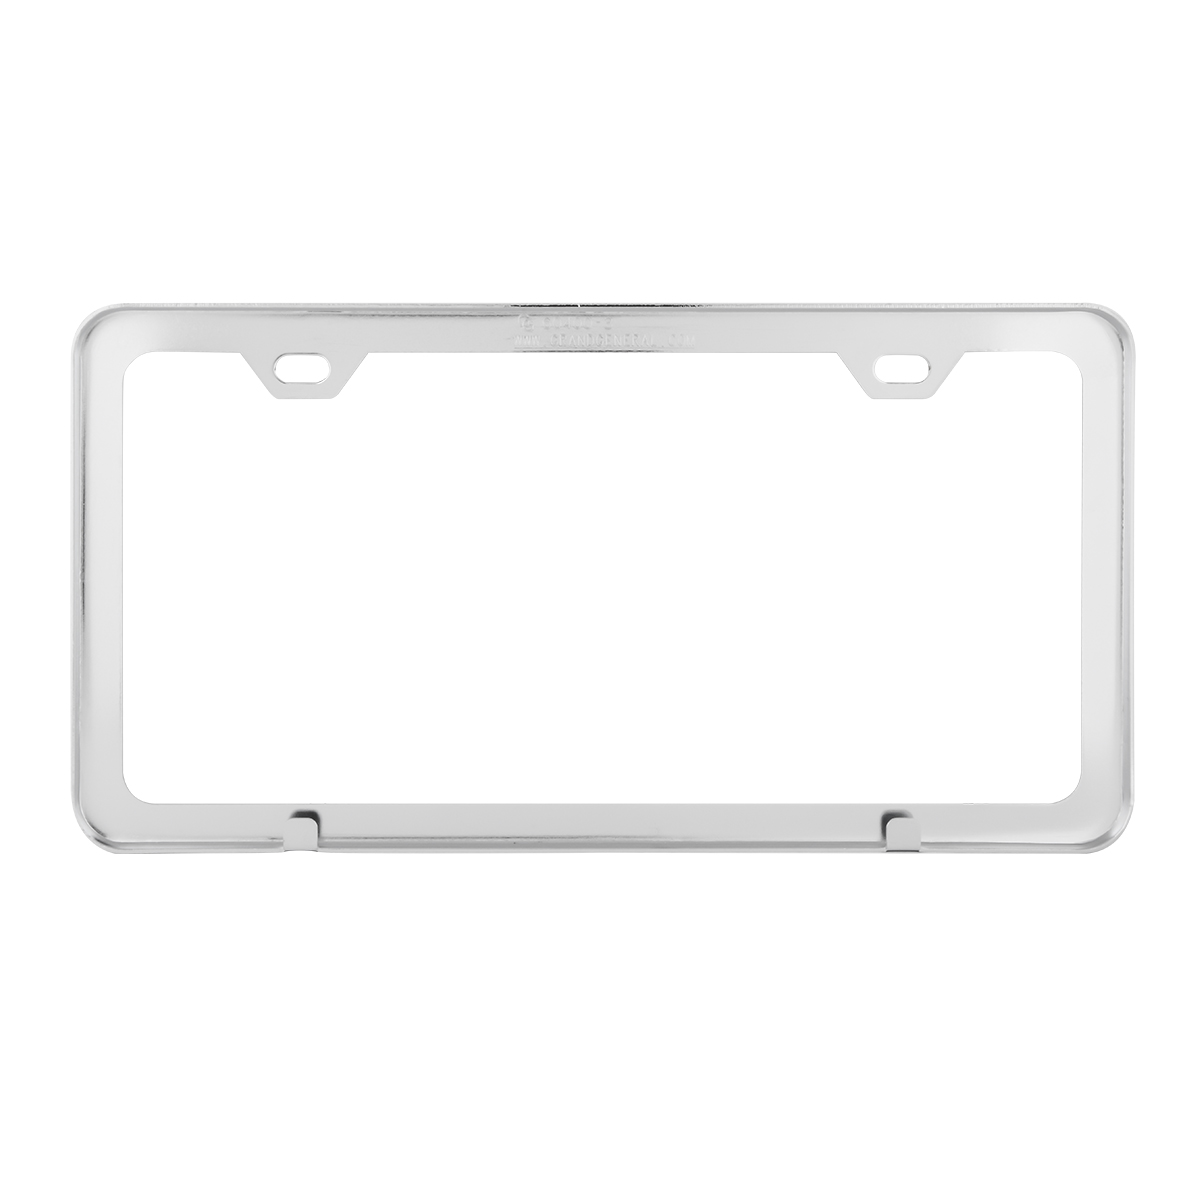 60400 Plain Chrome Plated 2 Hole License Plate Frame - Back View